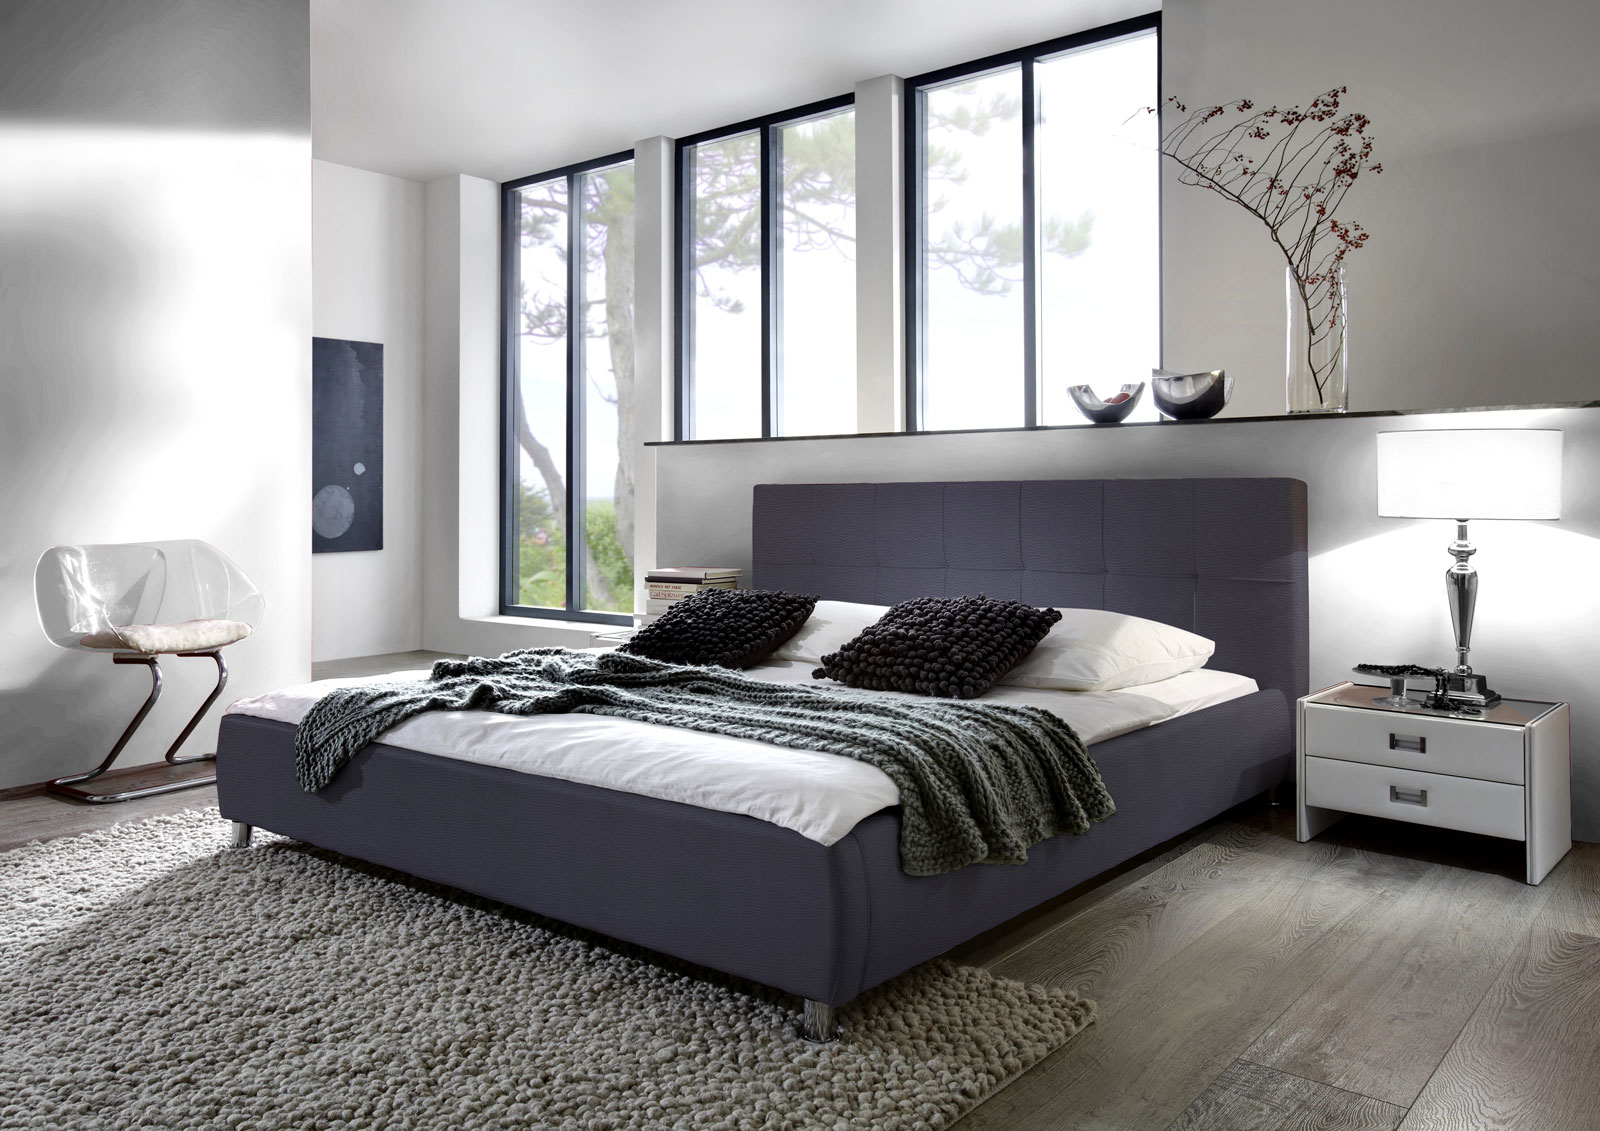 sam polsterbett 180 x 200 cm grau zarah g nstig. Black Bedroom Furniture Sets. Home Design Ideas